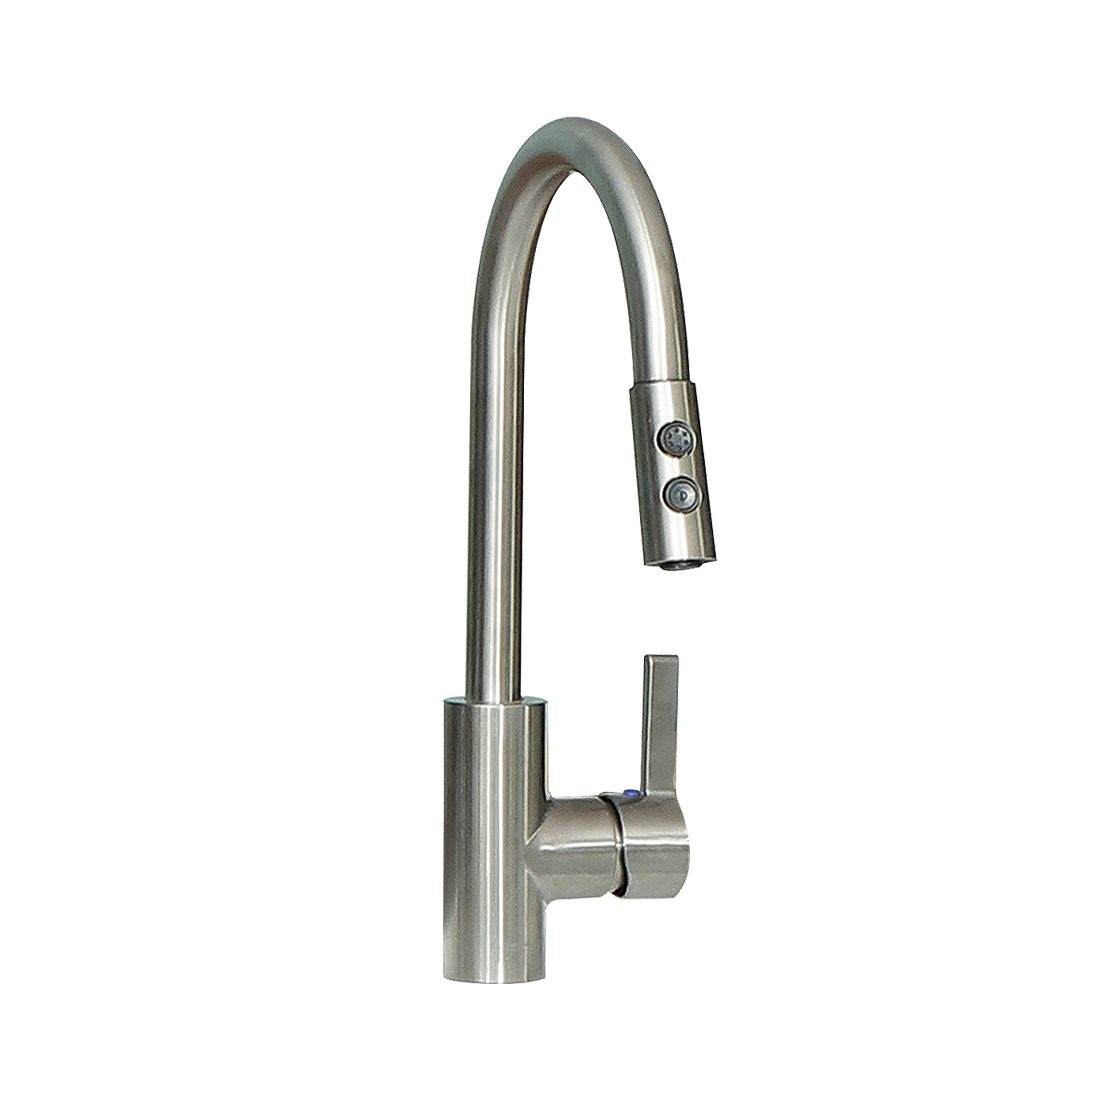 Burges 25inch Laundry Cabinet Pull Down Brushed Nickel Faucet View